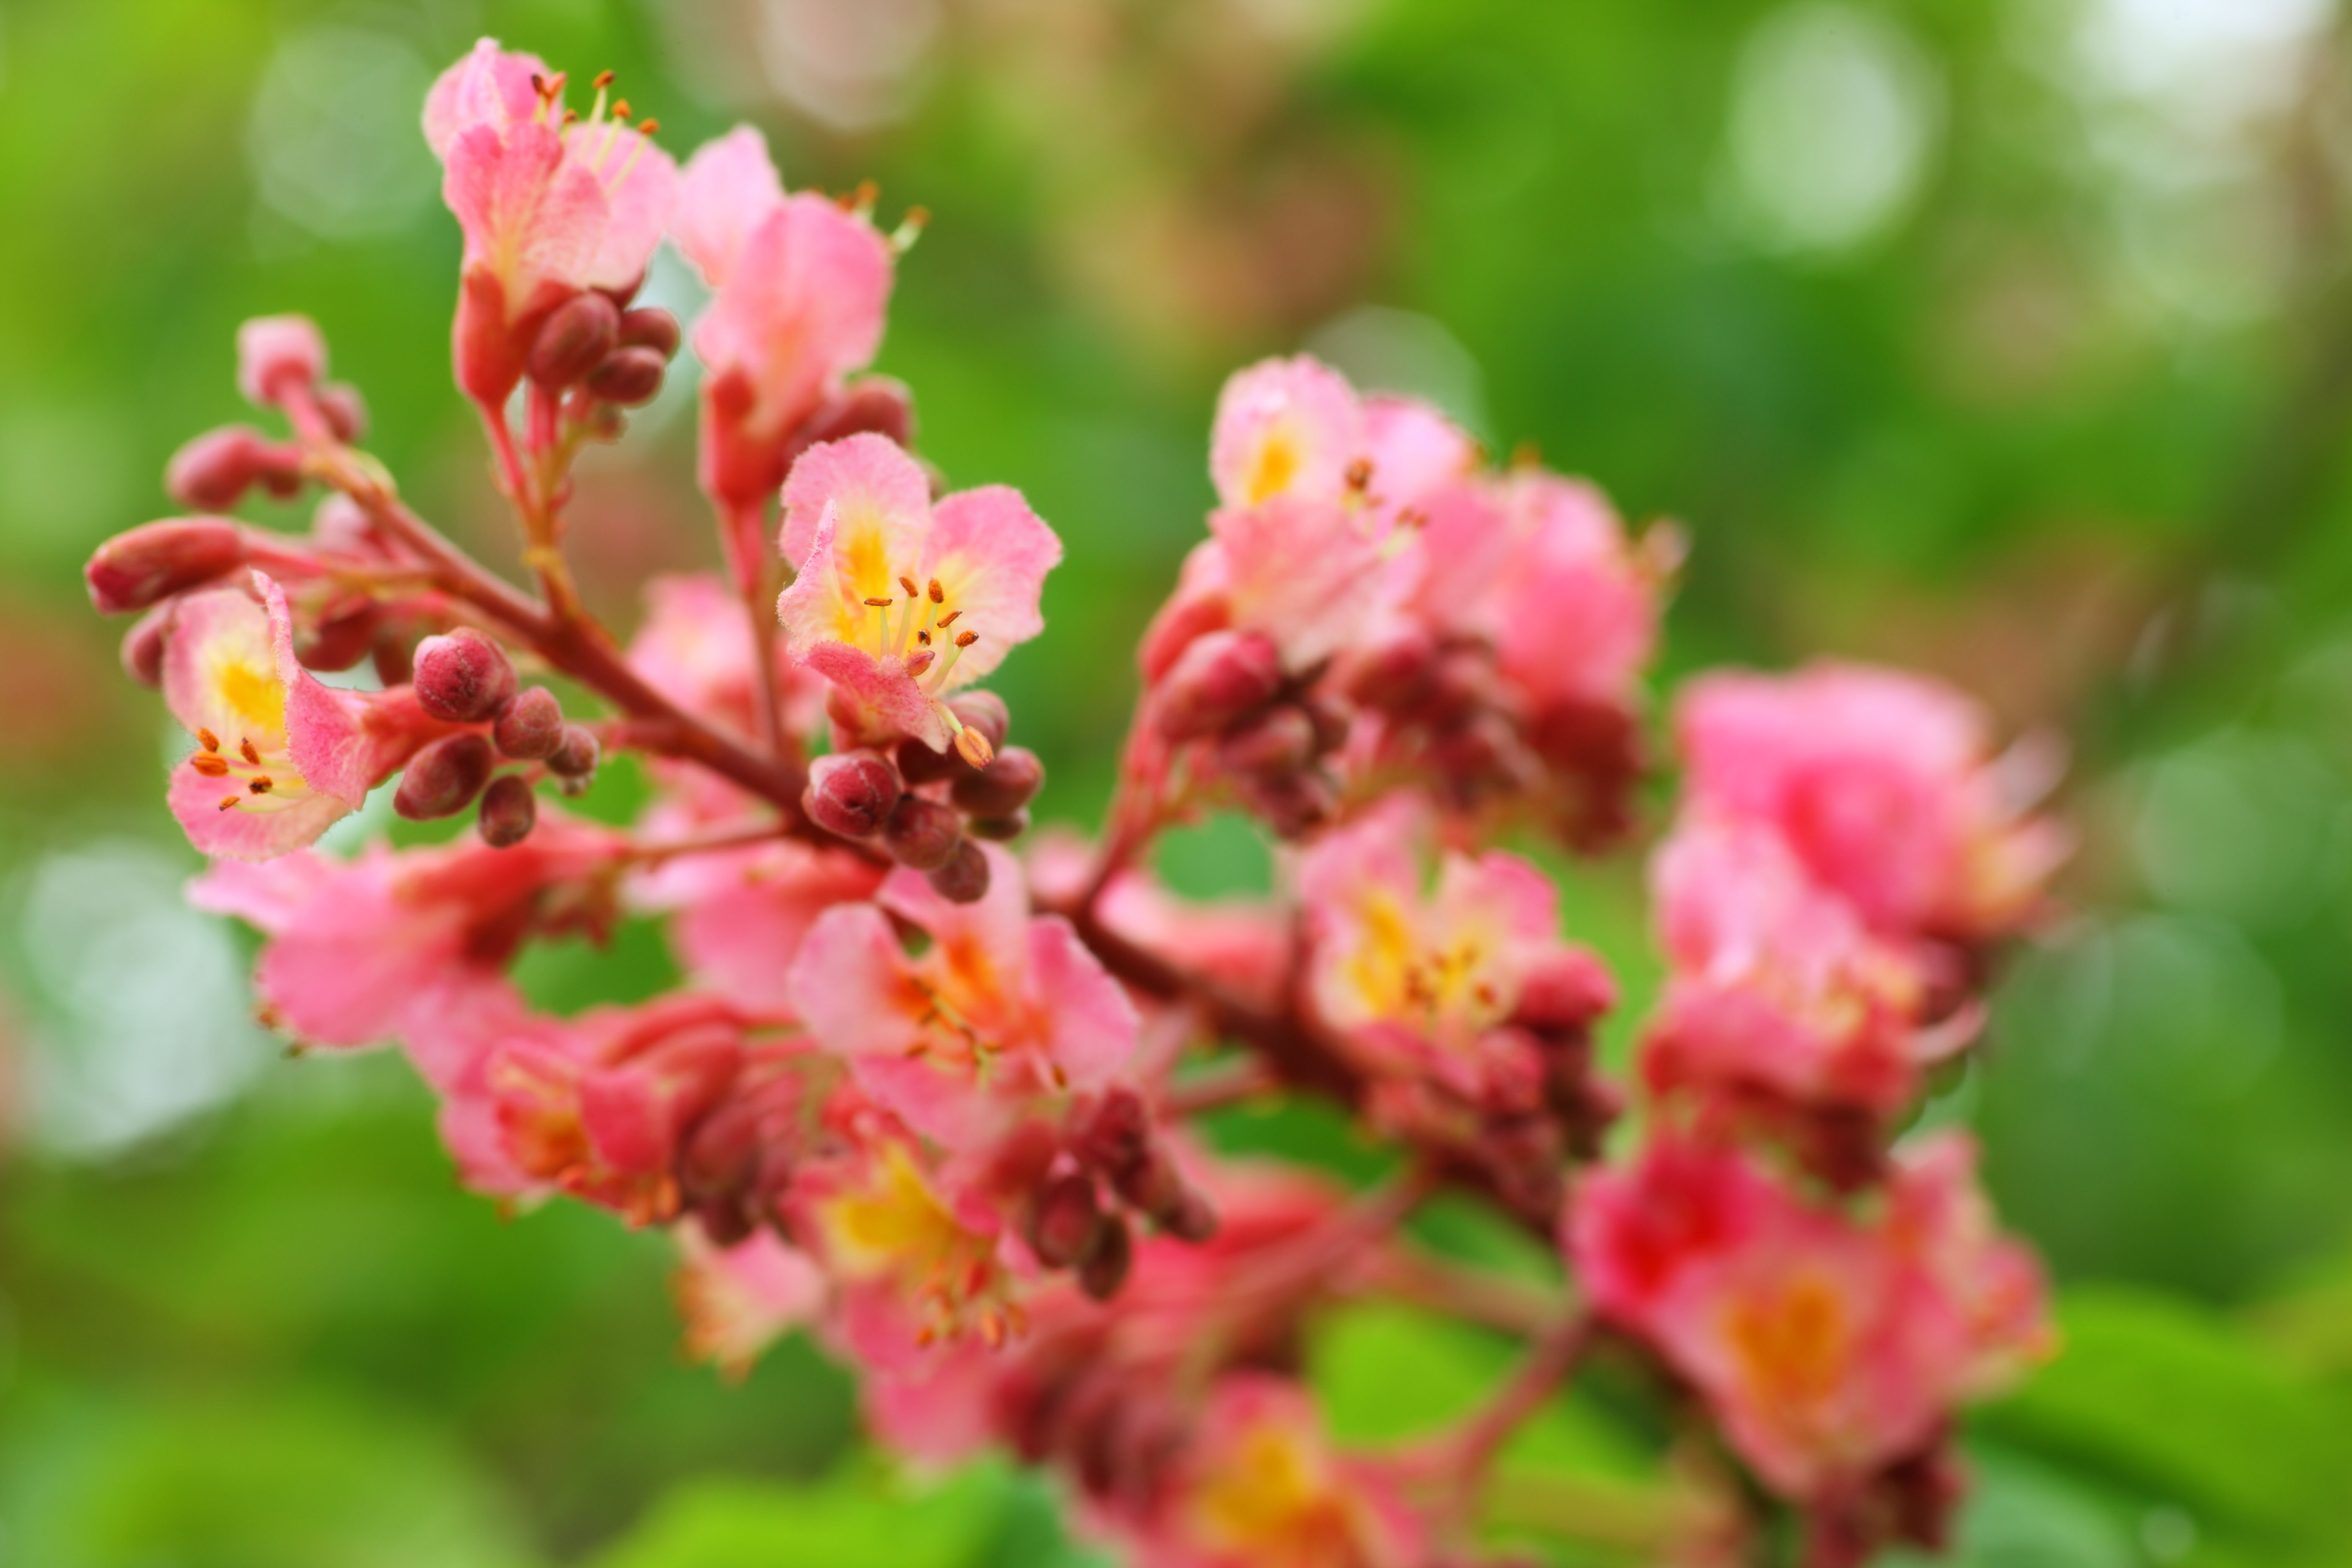 Yun Free Stock Photos No 7790 The Flower Of The Horse Chestnut